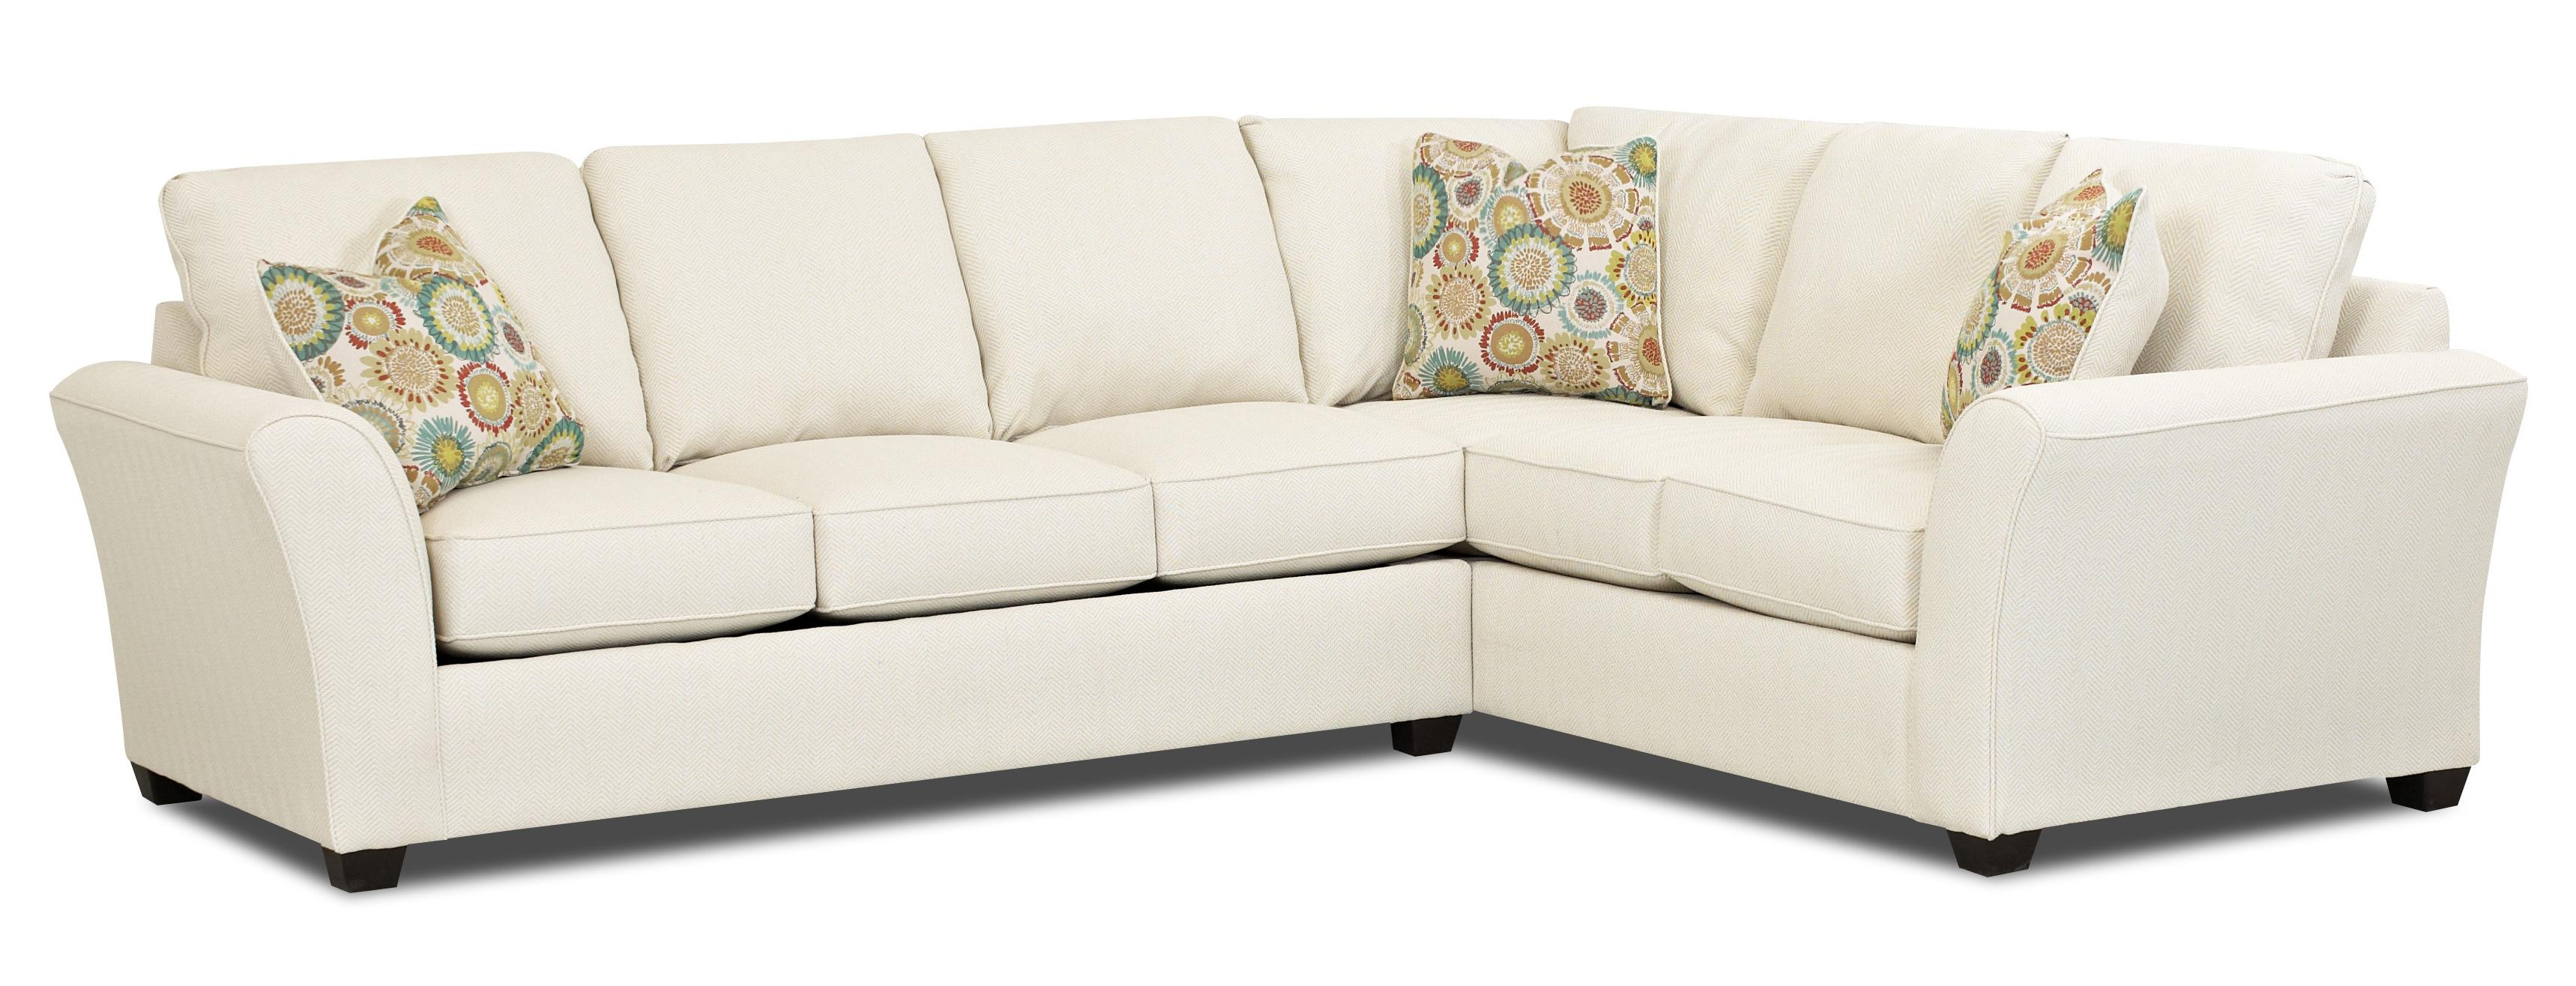 Transitional 2 Piece Sectional Sofa by Klaussner